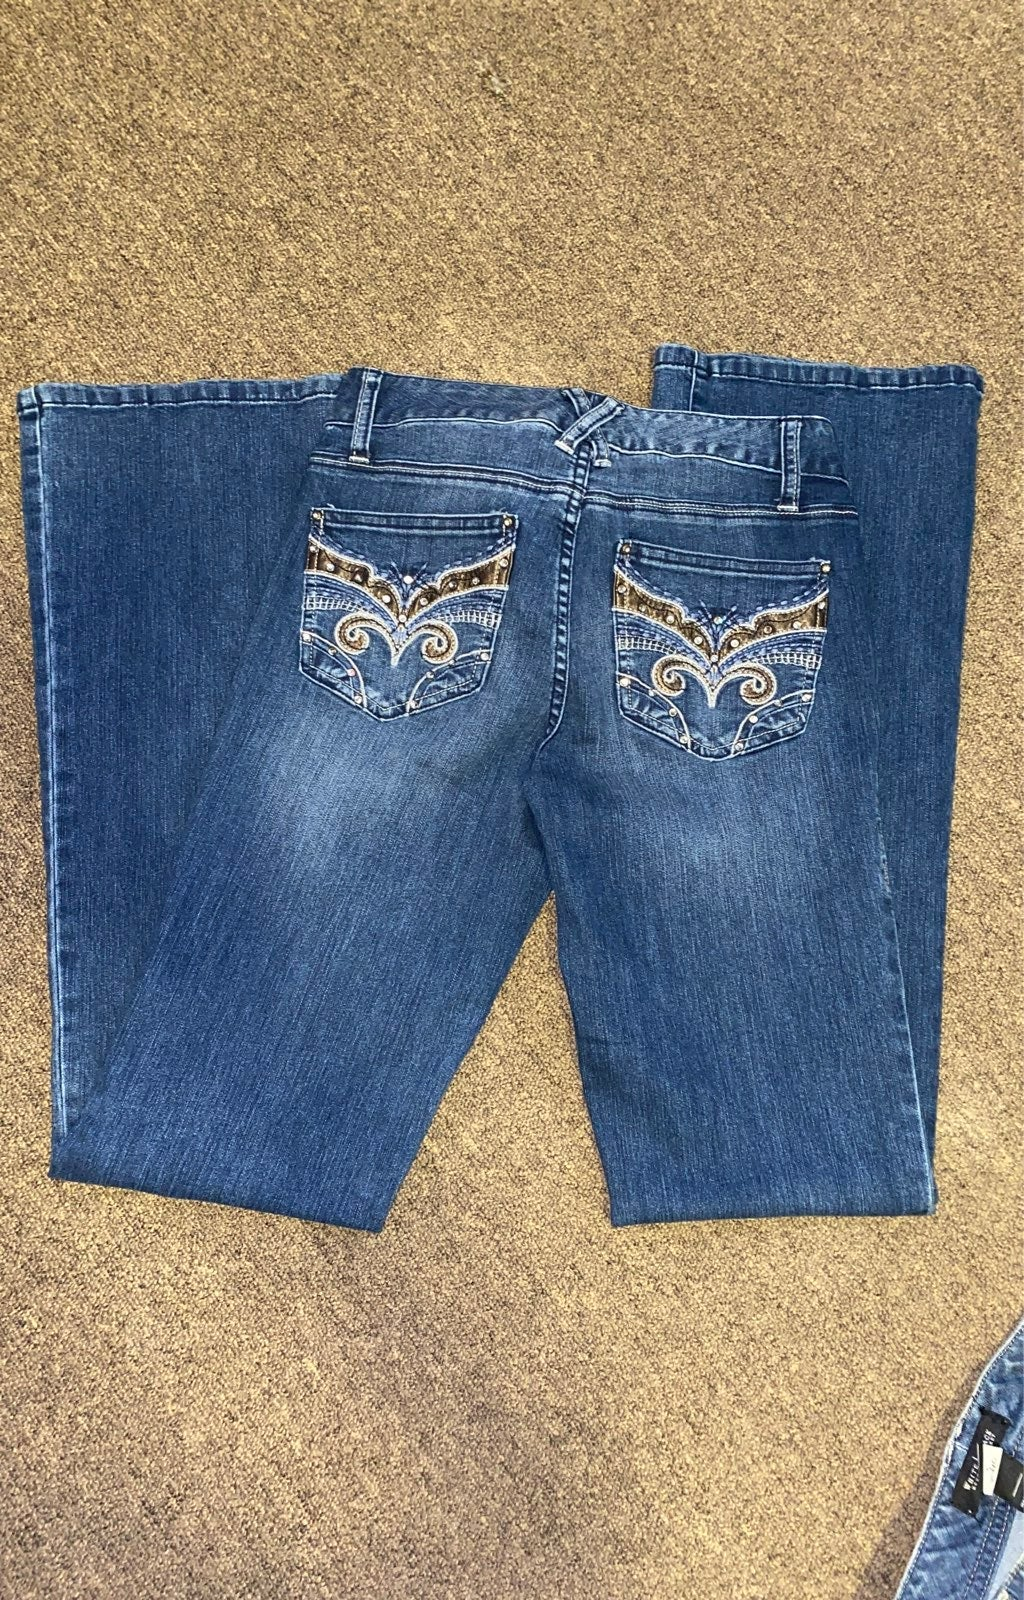 Nwt womens cache jeans size 4